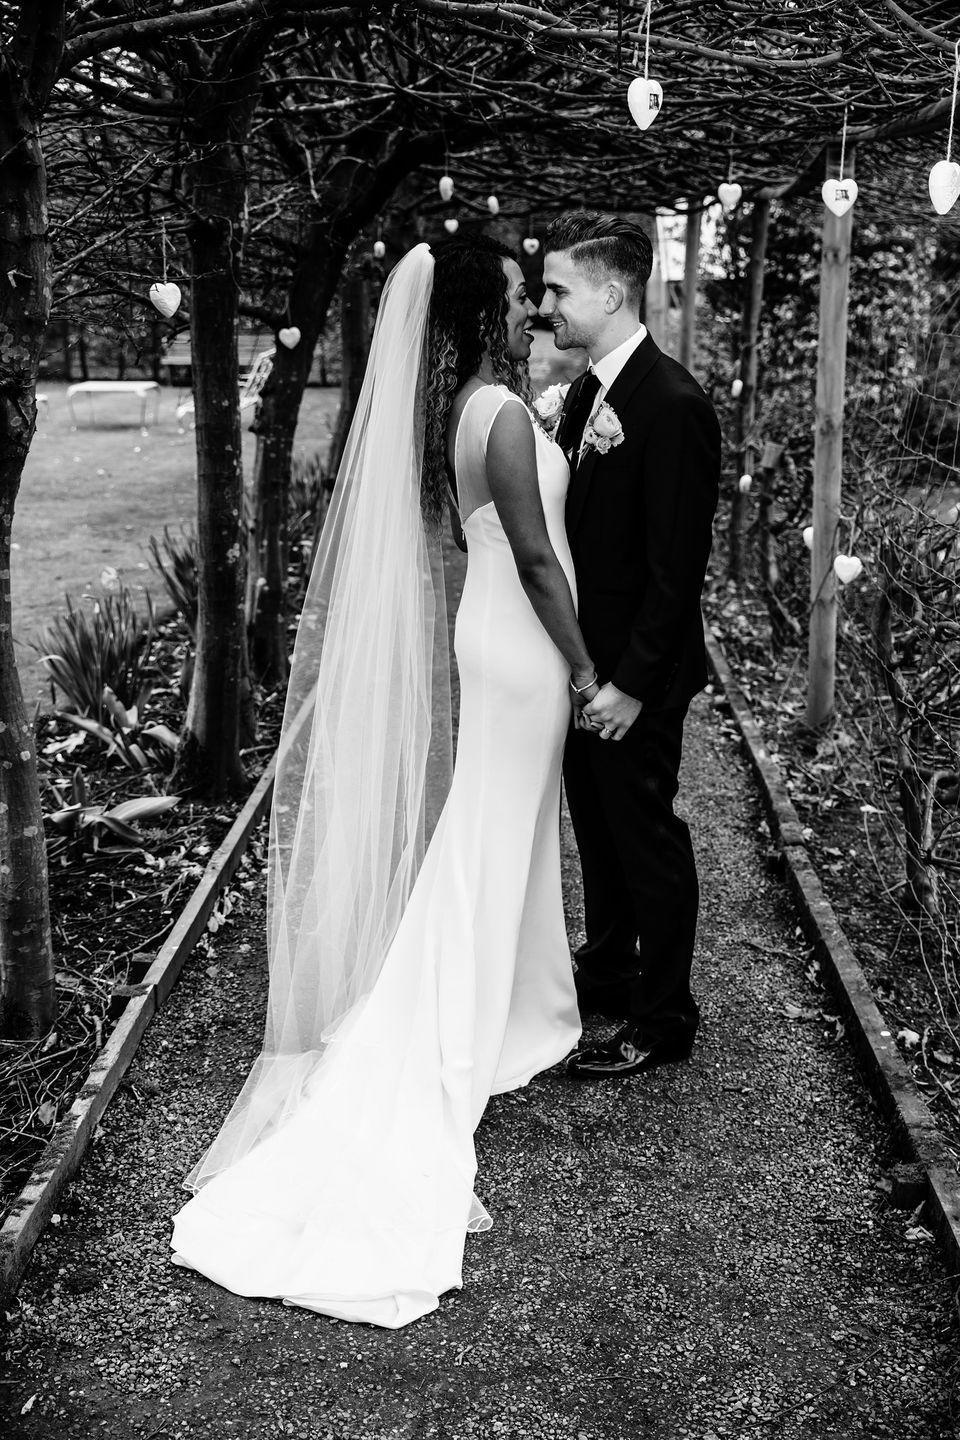 <p><strong>Wedding dress and veil:</strong> Blackburn Couture (Russell Blackburn)</p><p><strong>Shoes:</strong> Jimmy Choo</p><p><strong>Bracelets:</strong> Jenny Packham and Links of London</p>